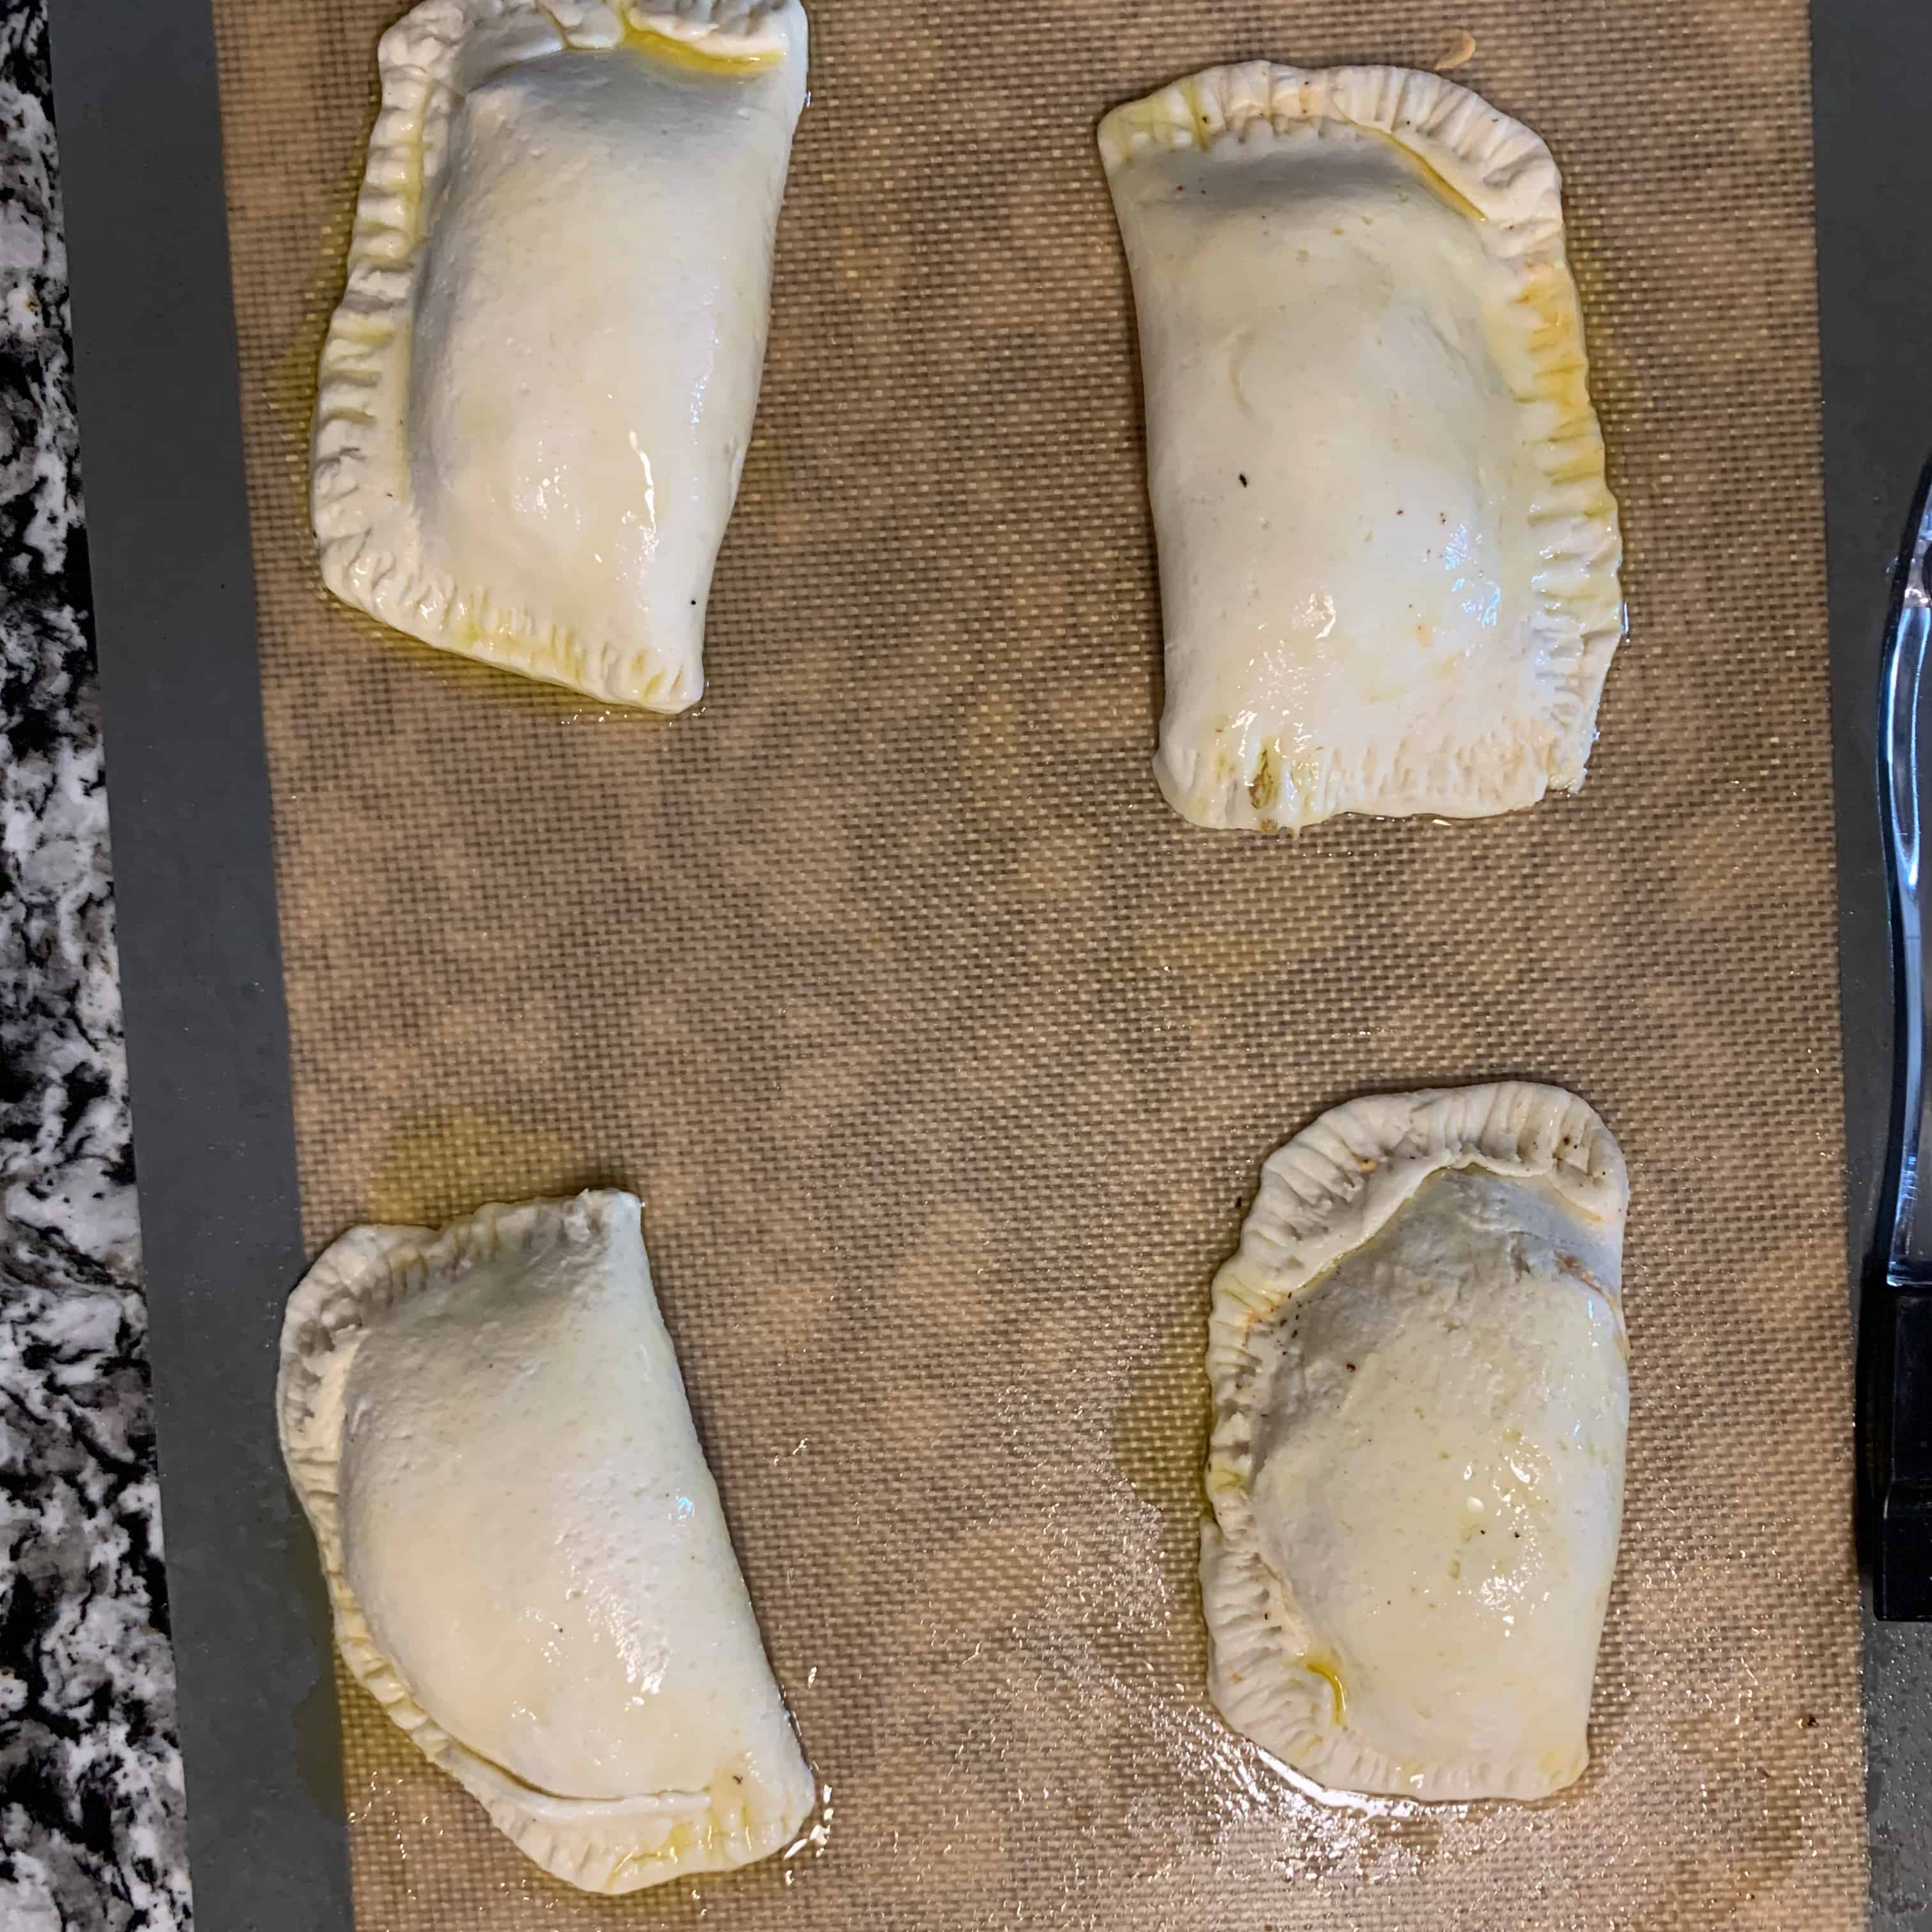 4 buffalo chicken empanadas with olive oil brushed on top and crimped edges before baking